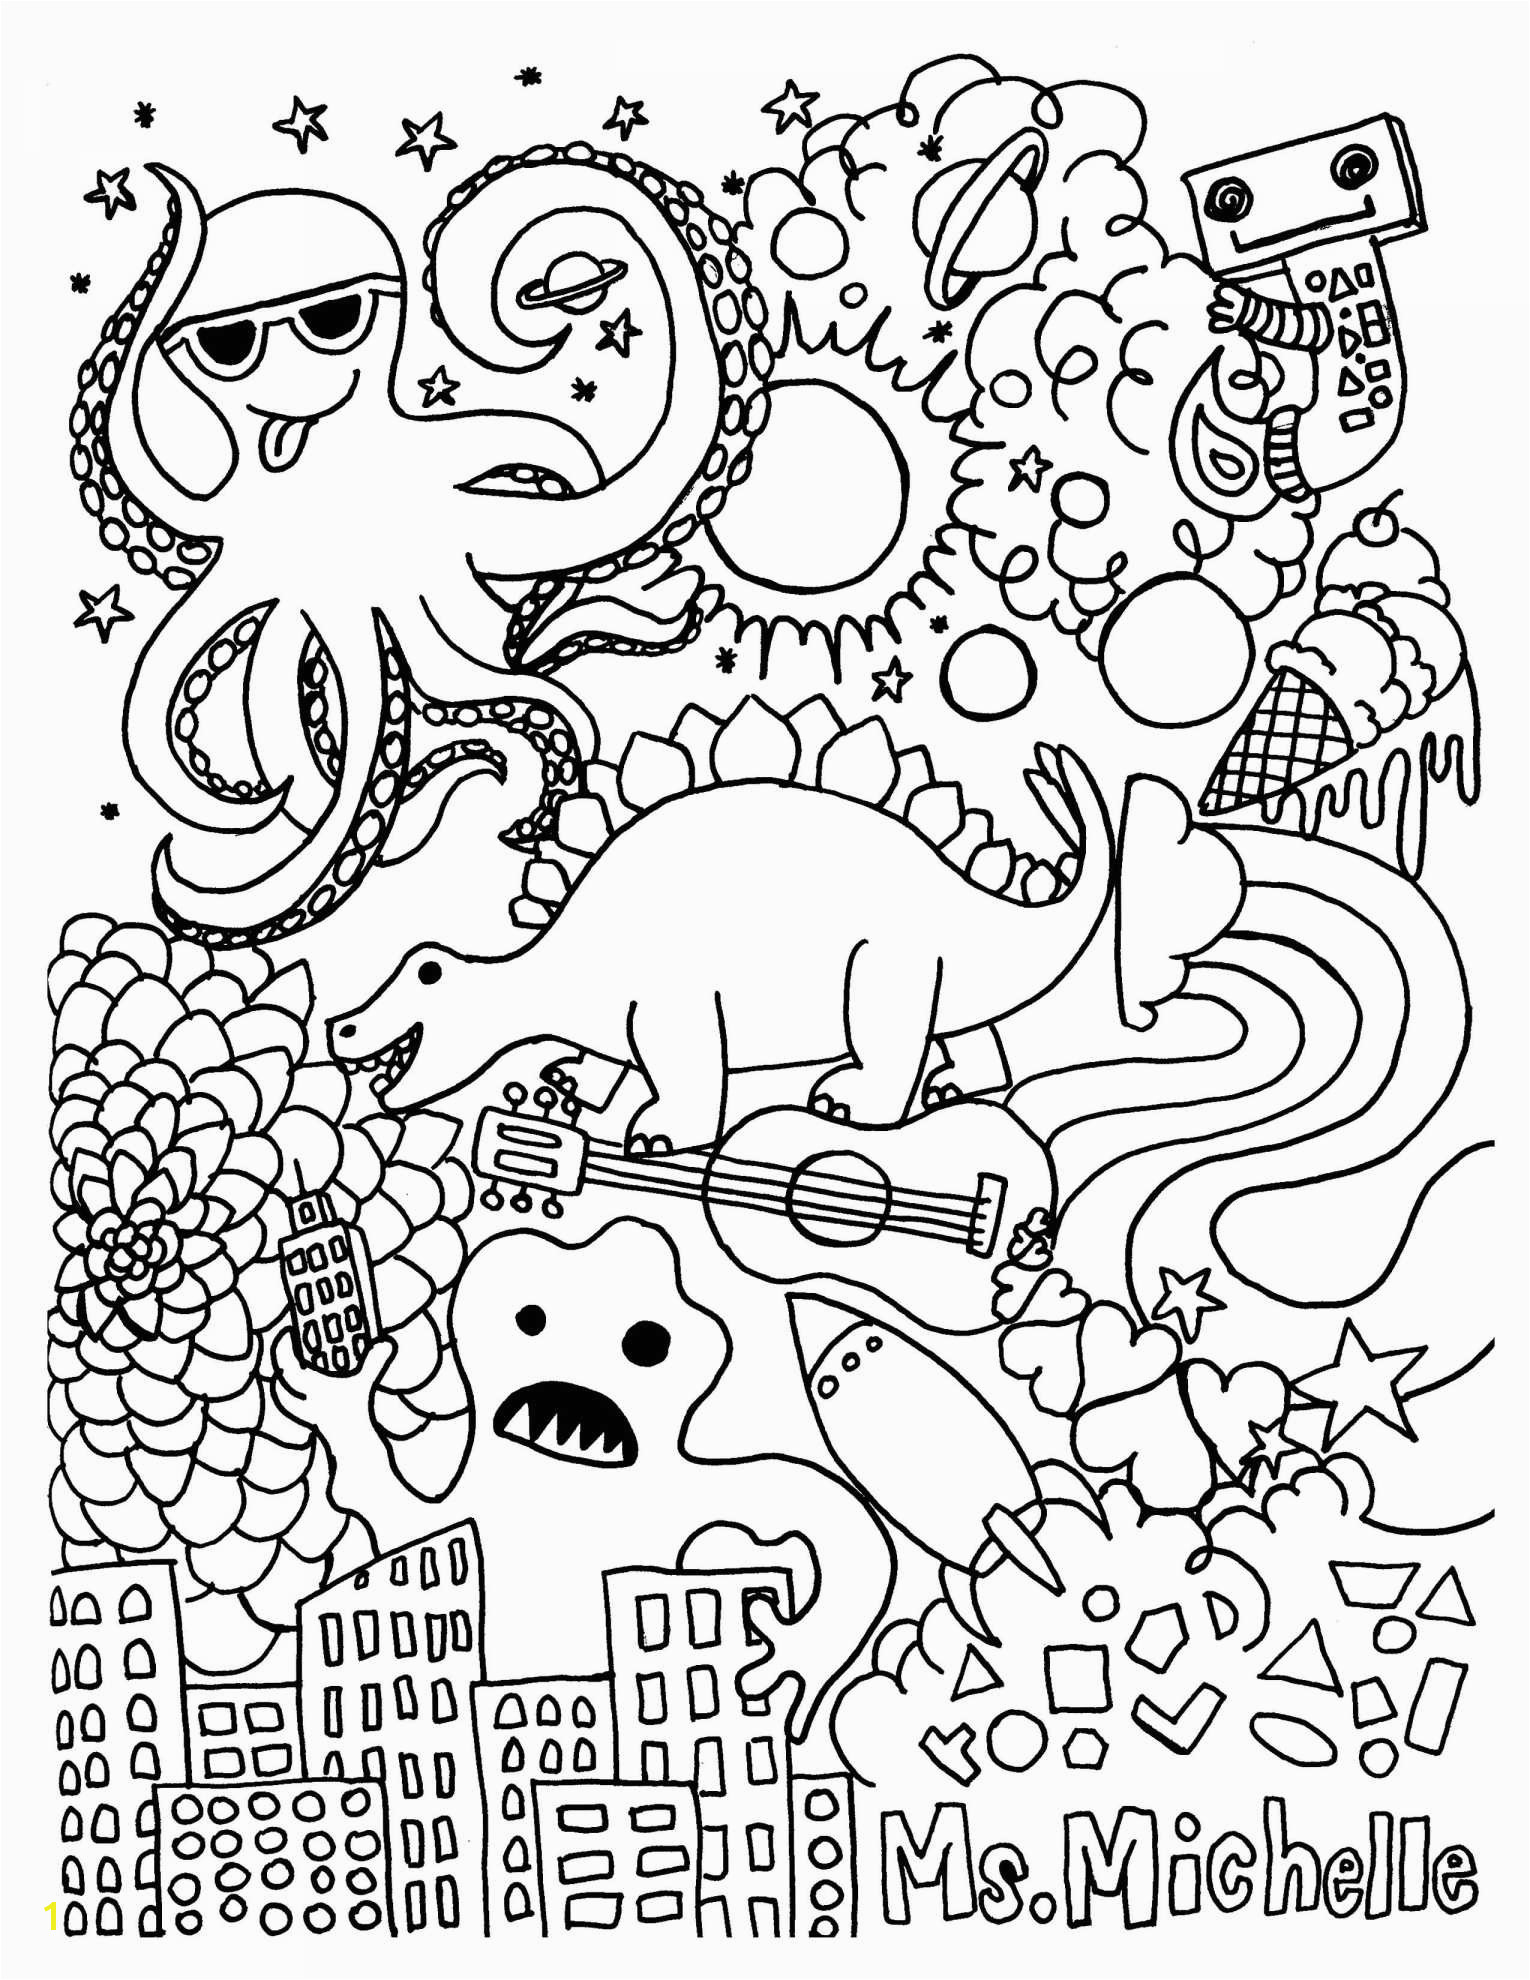 Girl Face Coloring Page Lovely Girly Coloring Pages Coloring Pages